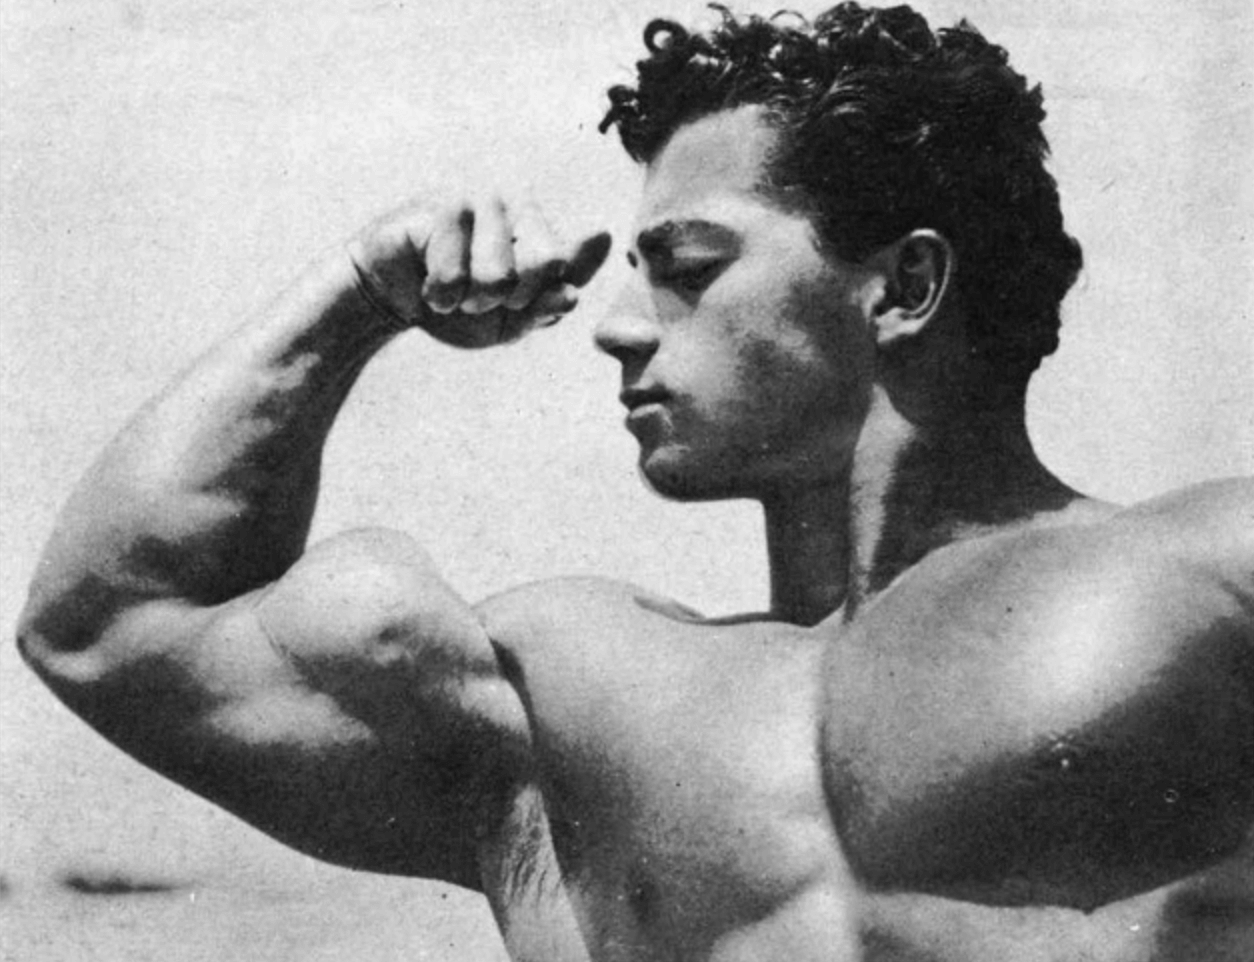 "Marvin Eder - a bodybuilder and strength athlete from the early 50s. He weighed 190lbs at 5'7,"" and benched 515lbs."